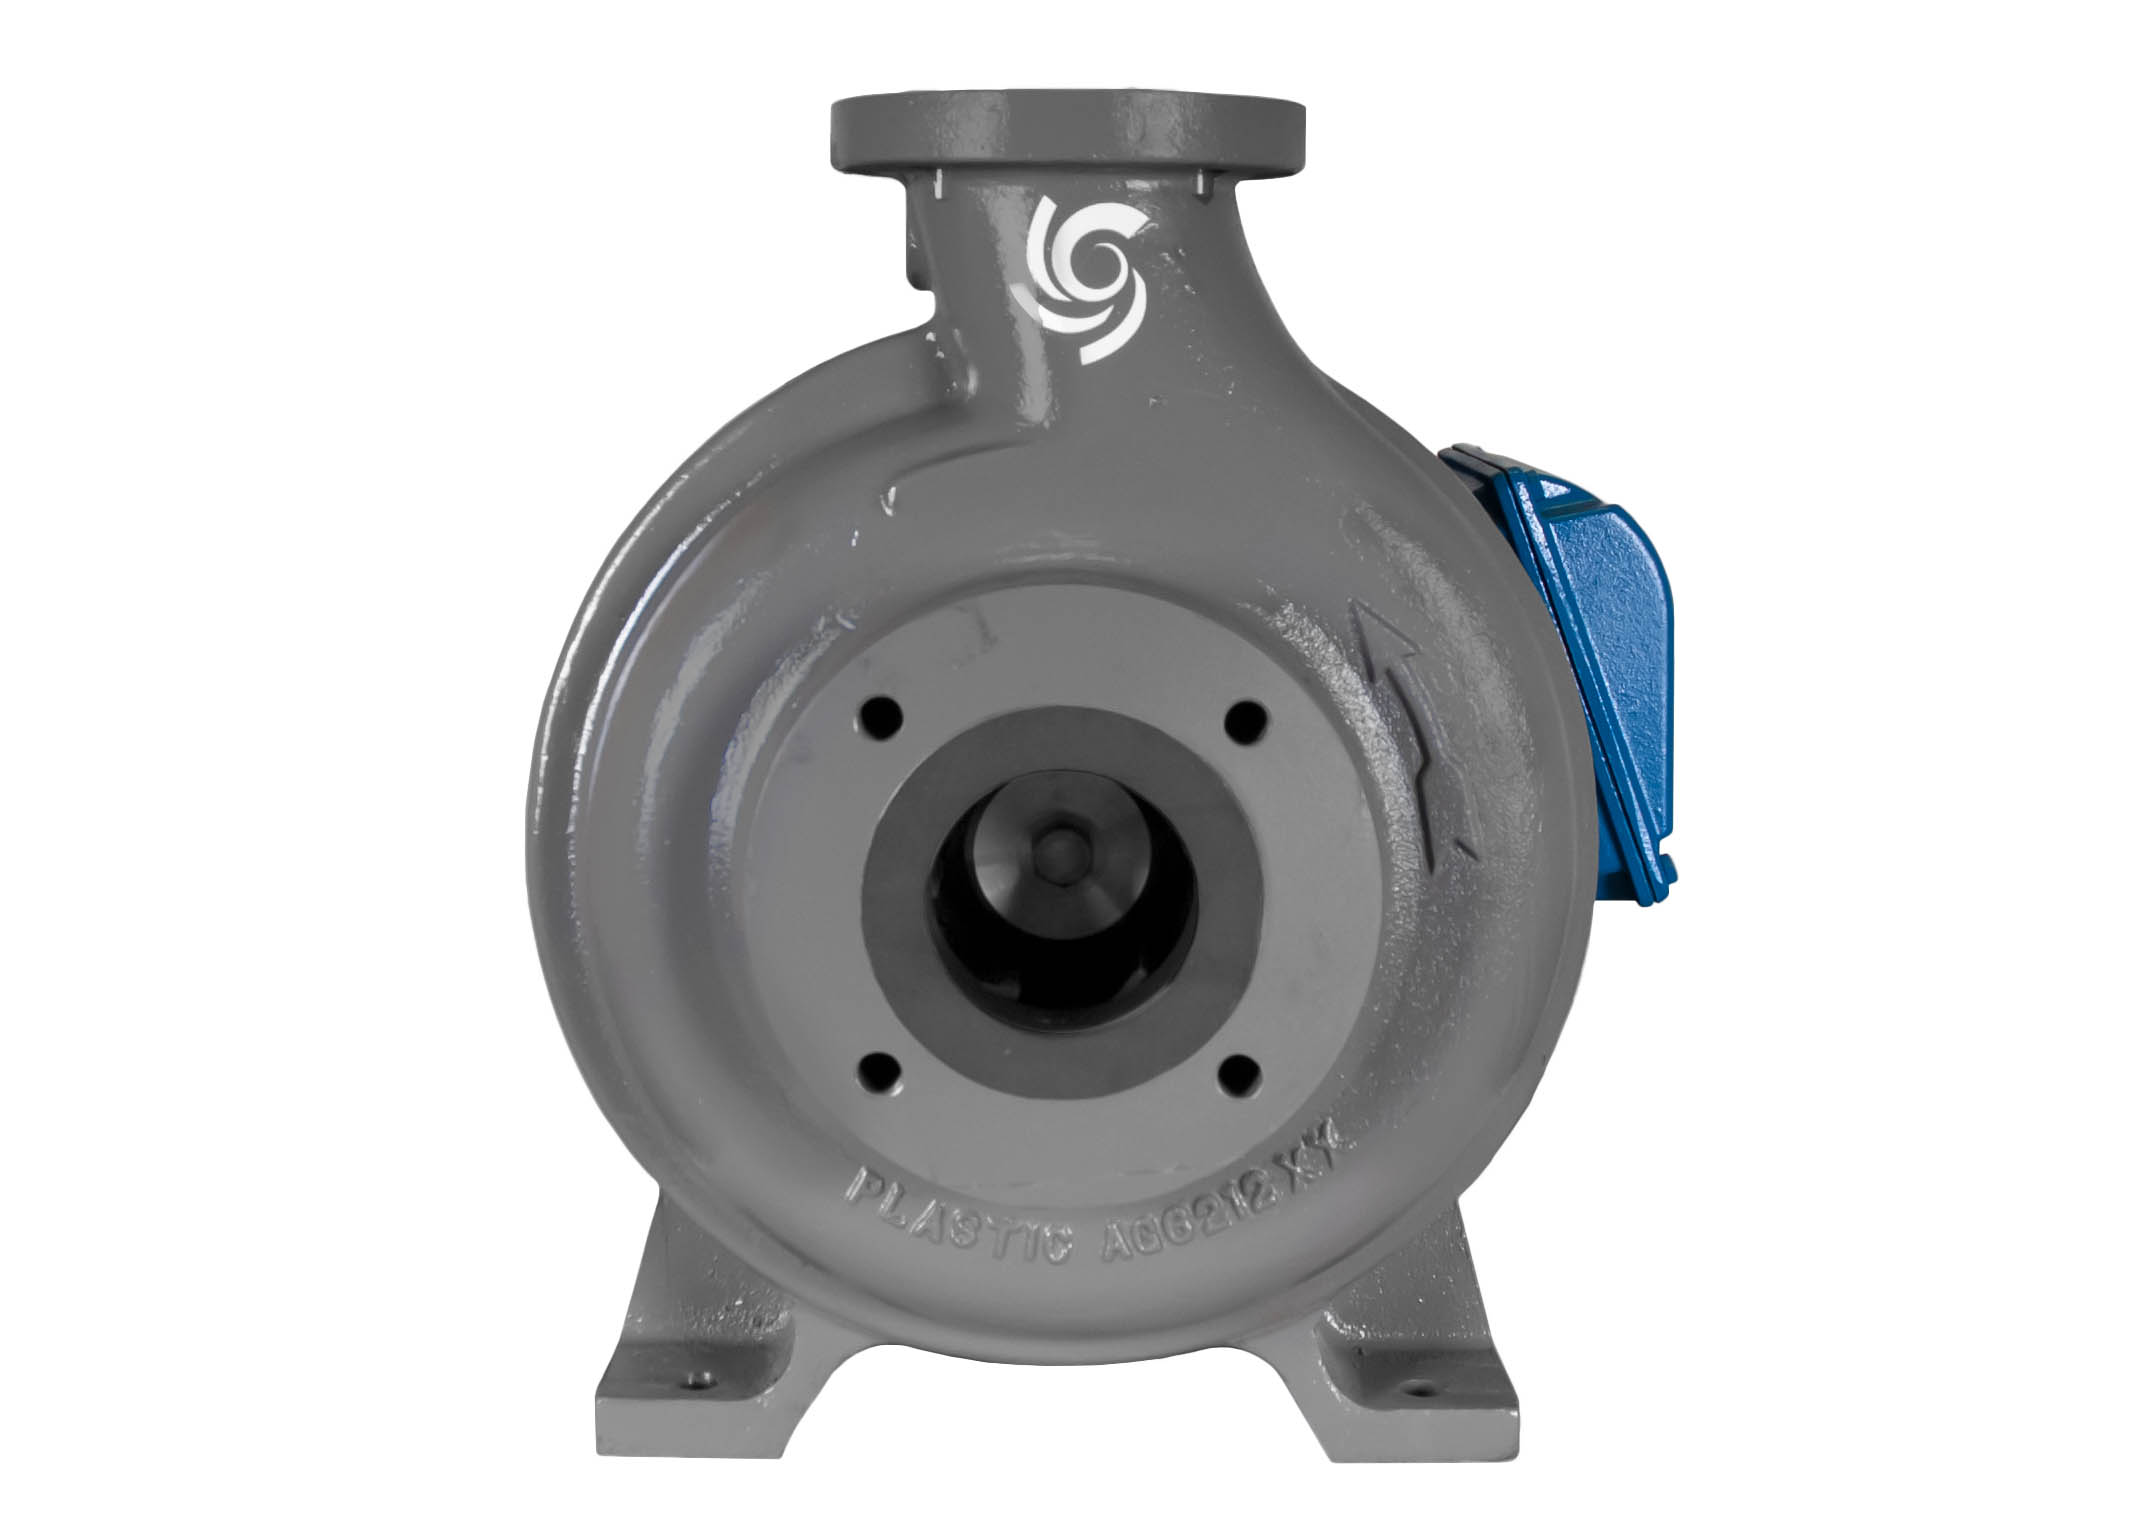 C-Shell 3x2-10 Pump with blue WEG Motor front view